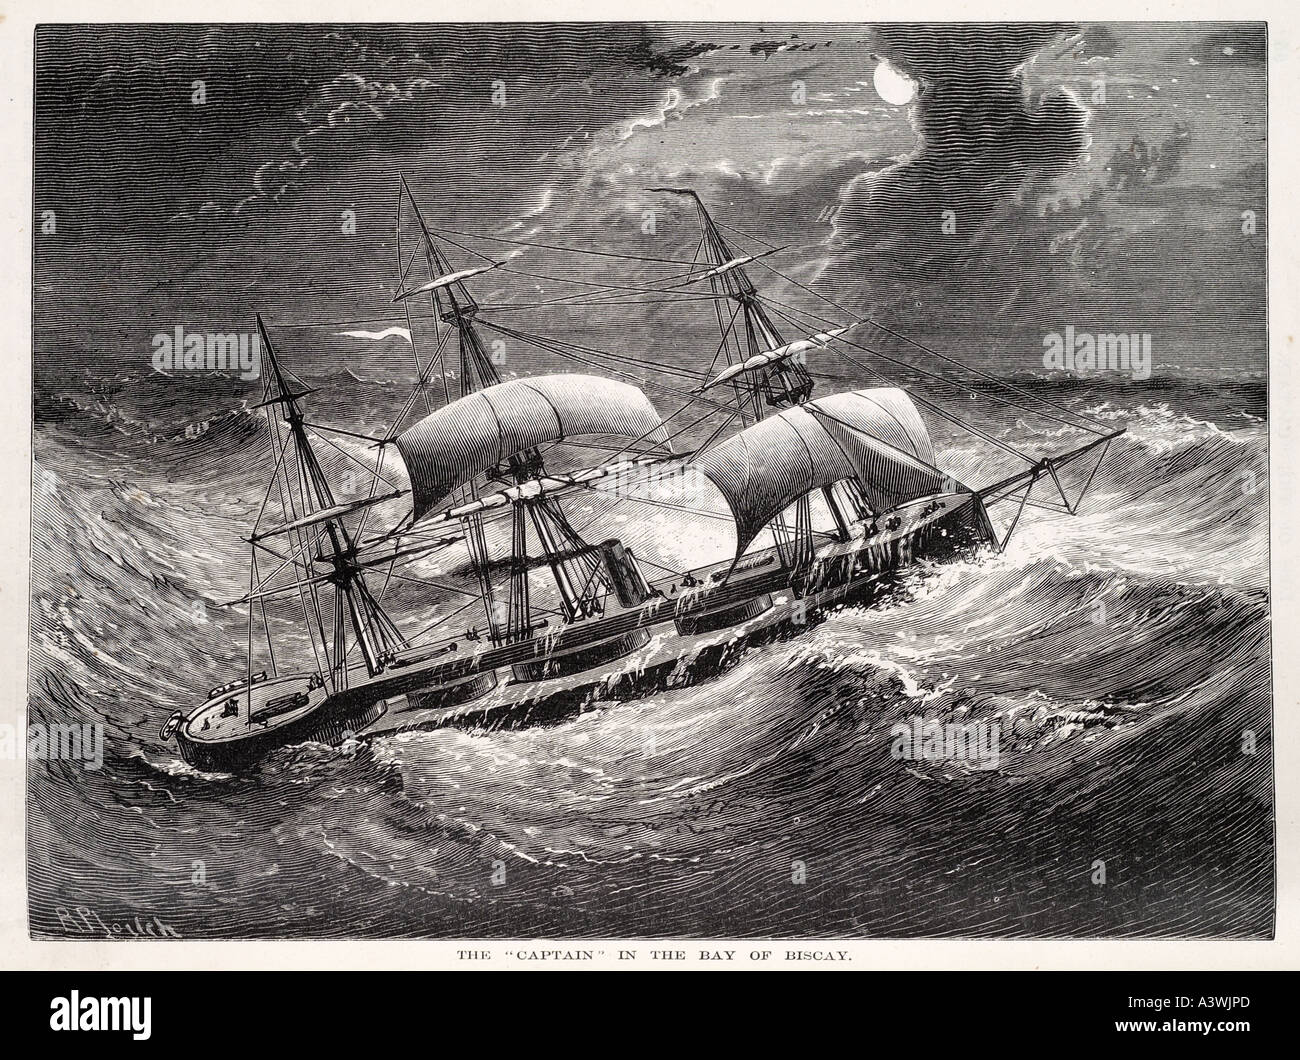 bay biscay Heavy weather France Atlantic Ocean sea  storm gale rough waves trough sail ship boat danger severe marine - Stock Image